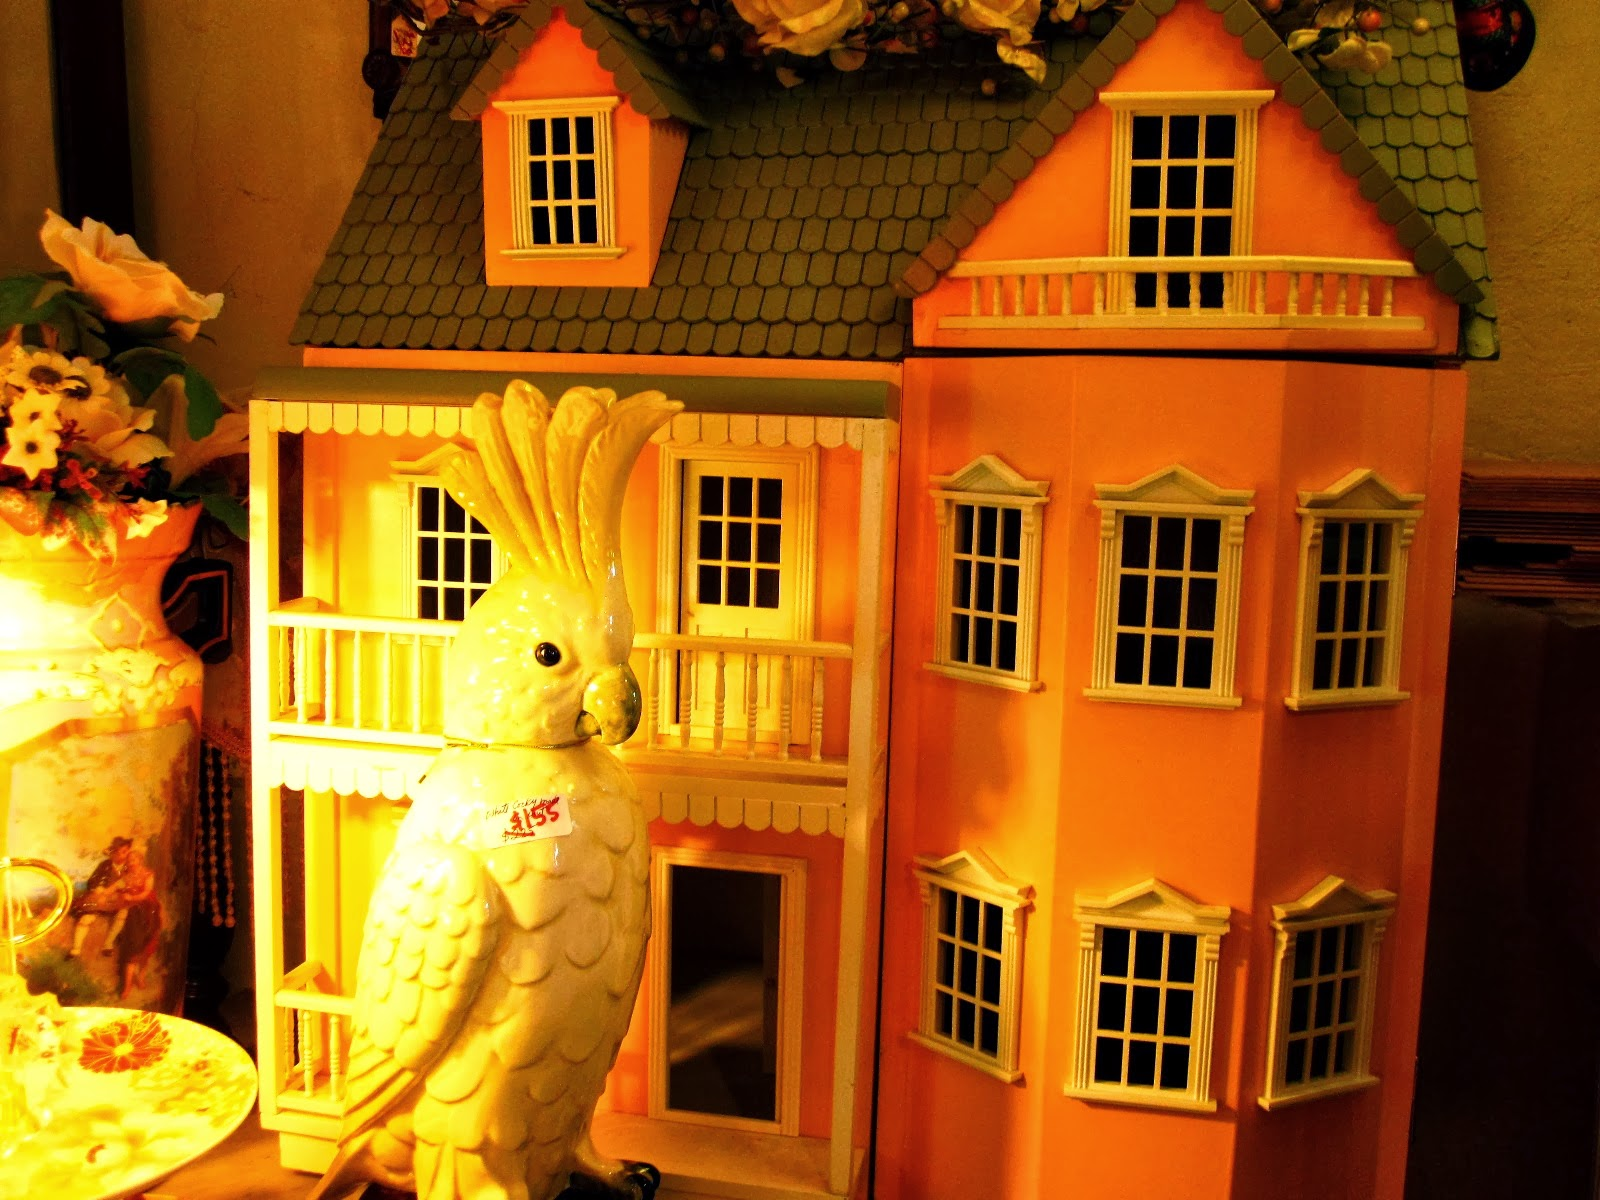 Dolls house for sale at The Old Tythe Barn dolls house shop at Blackheath